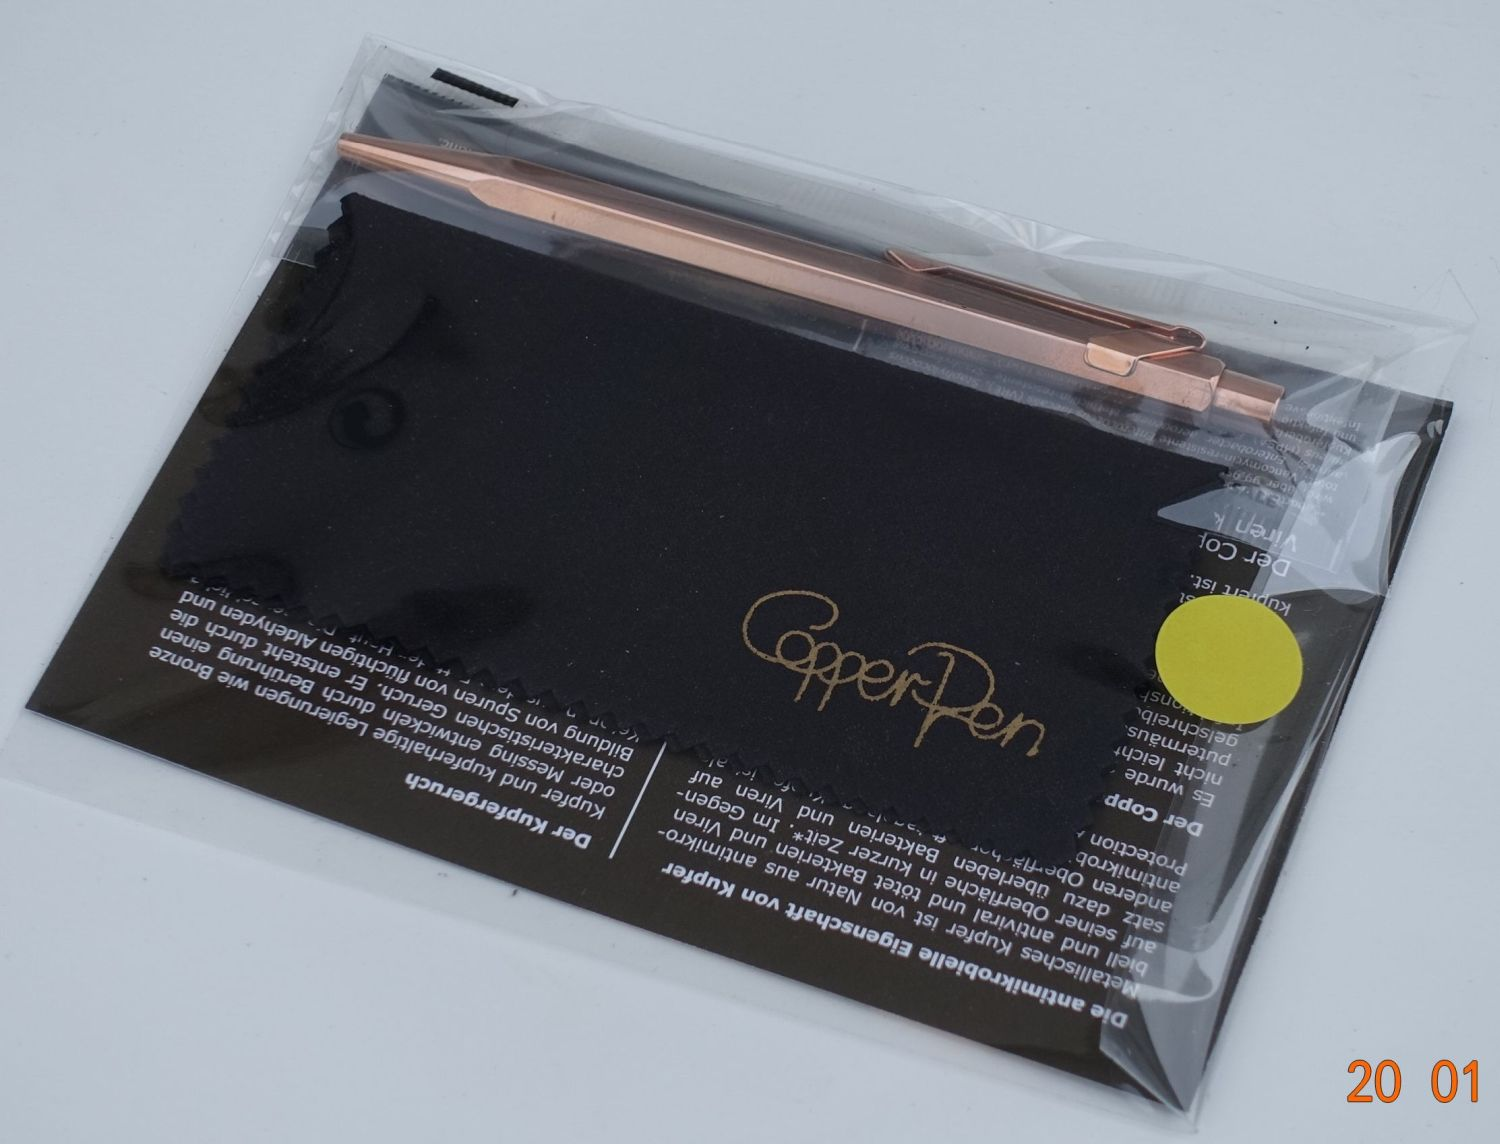 packaging of the copper pen